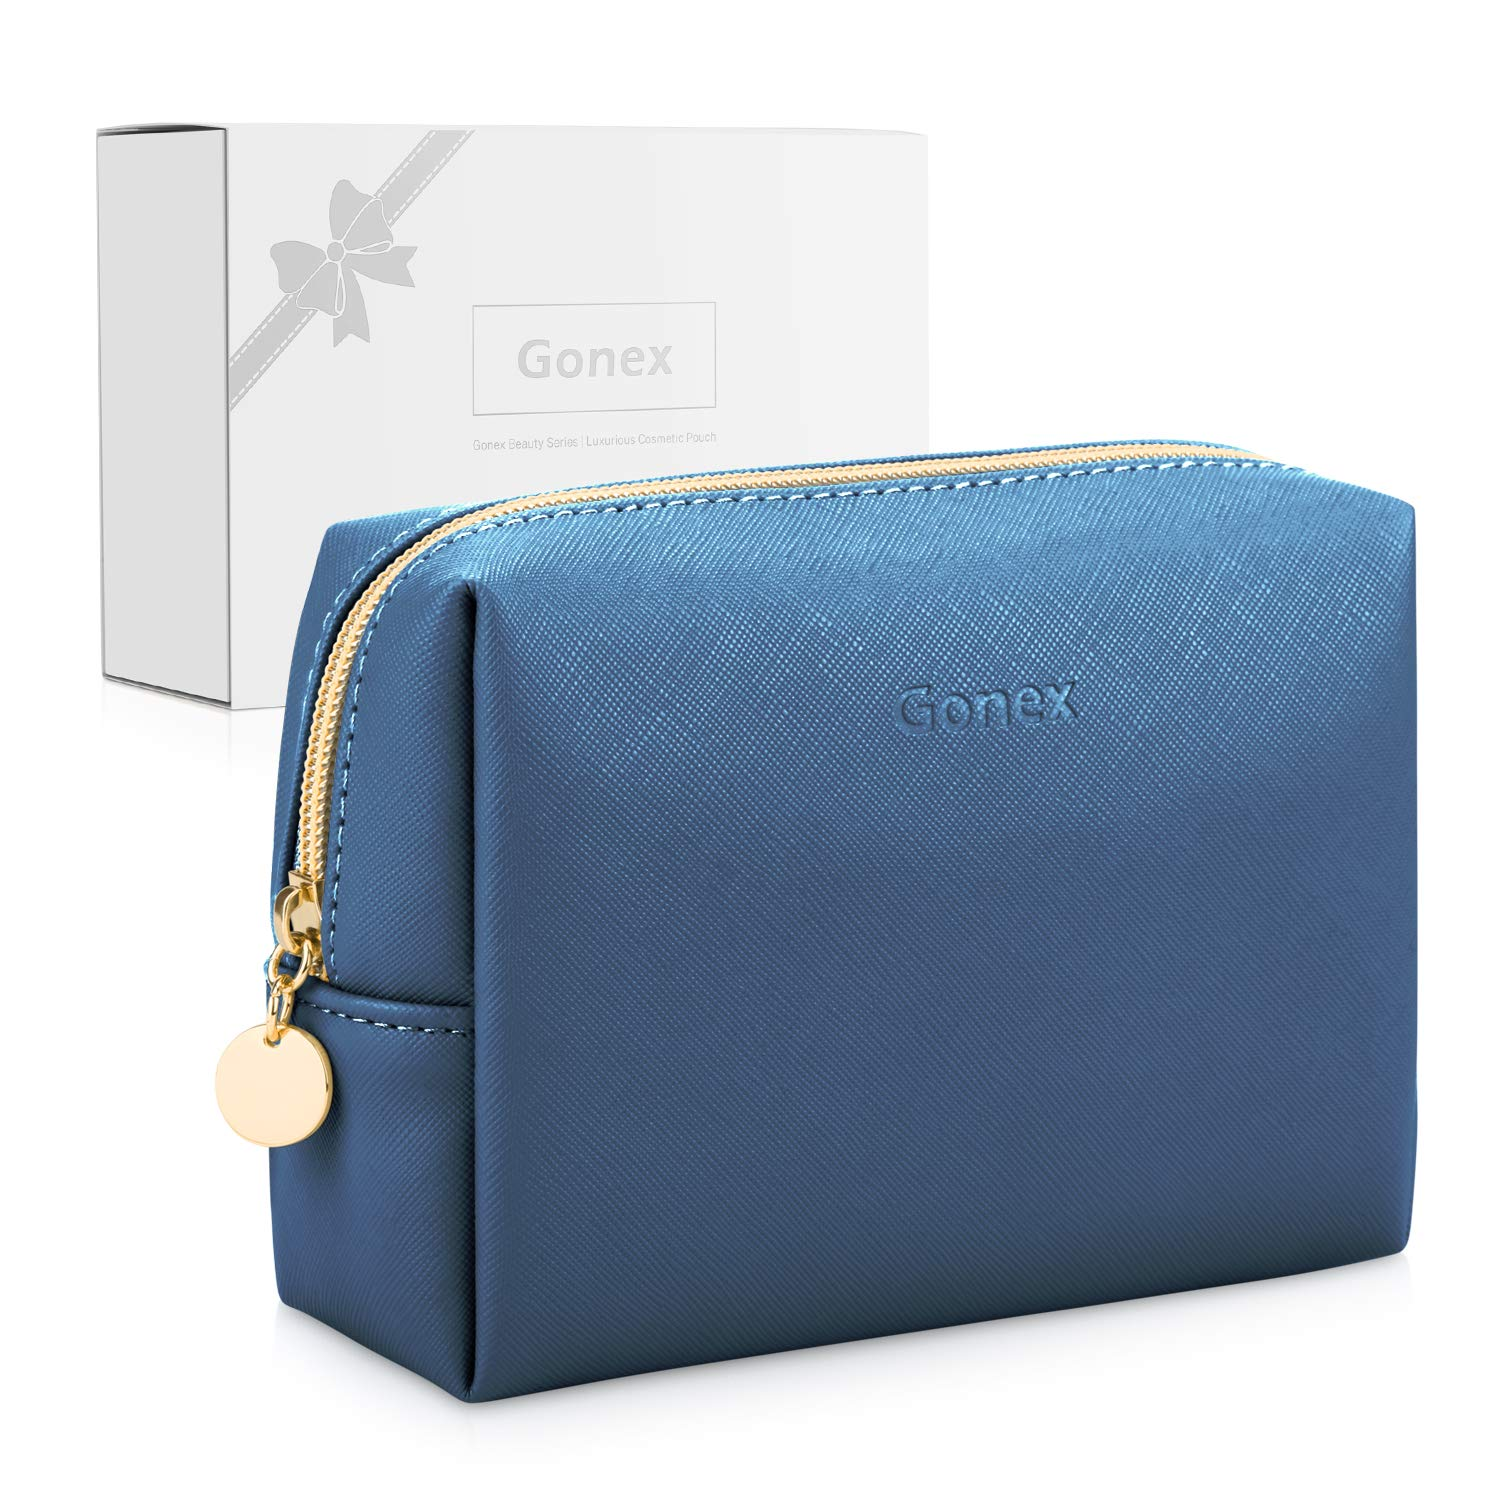 Gonex Small Makeup Bag for Purse PU Vegan Leather Travel Cosmetic Pouch Toiletry Bag for Women Girls Gifts Portable Water-Resistant Daily Storage Organzier Royal Blue